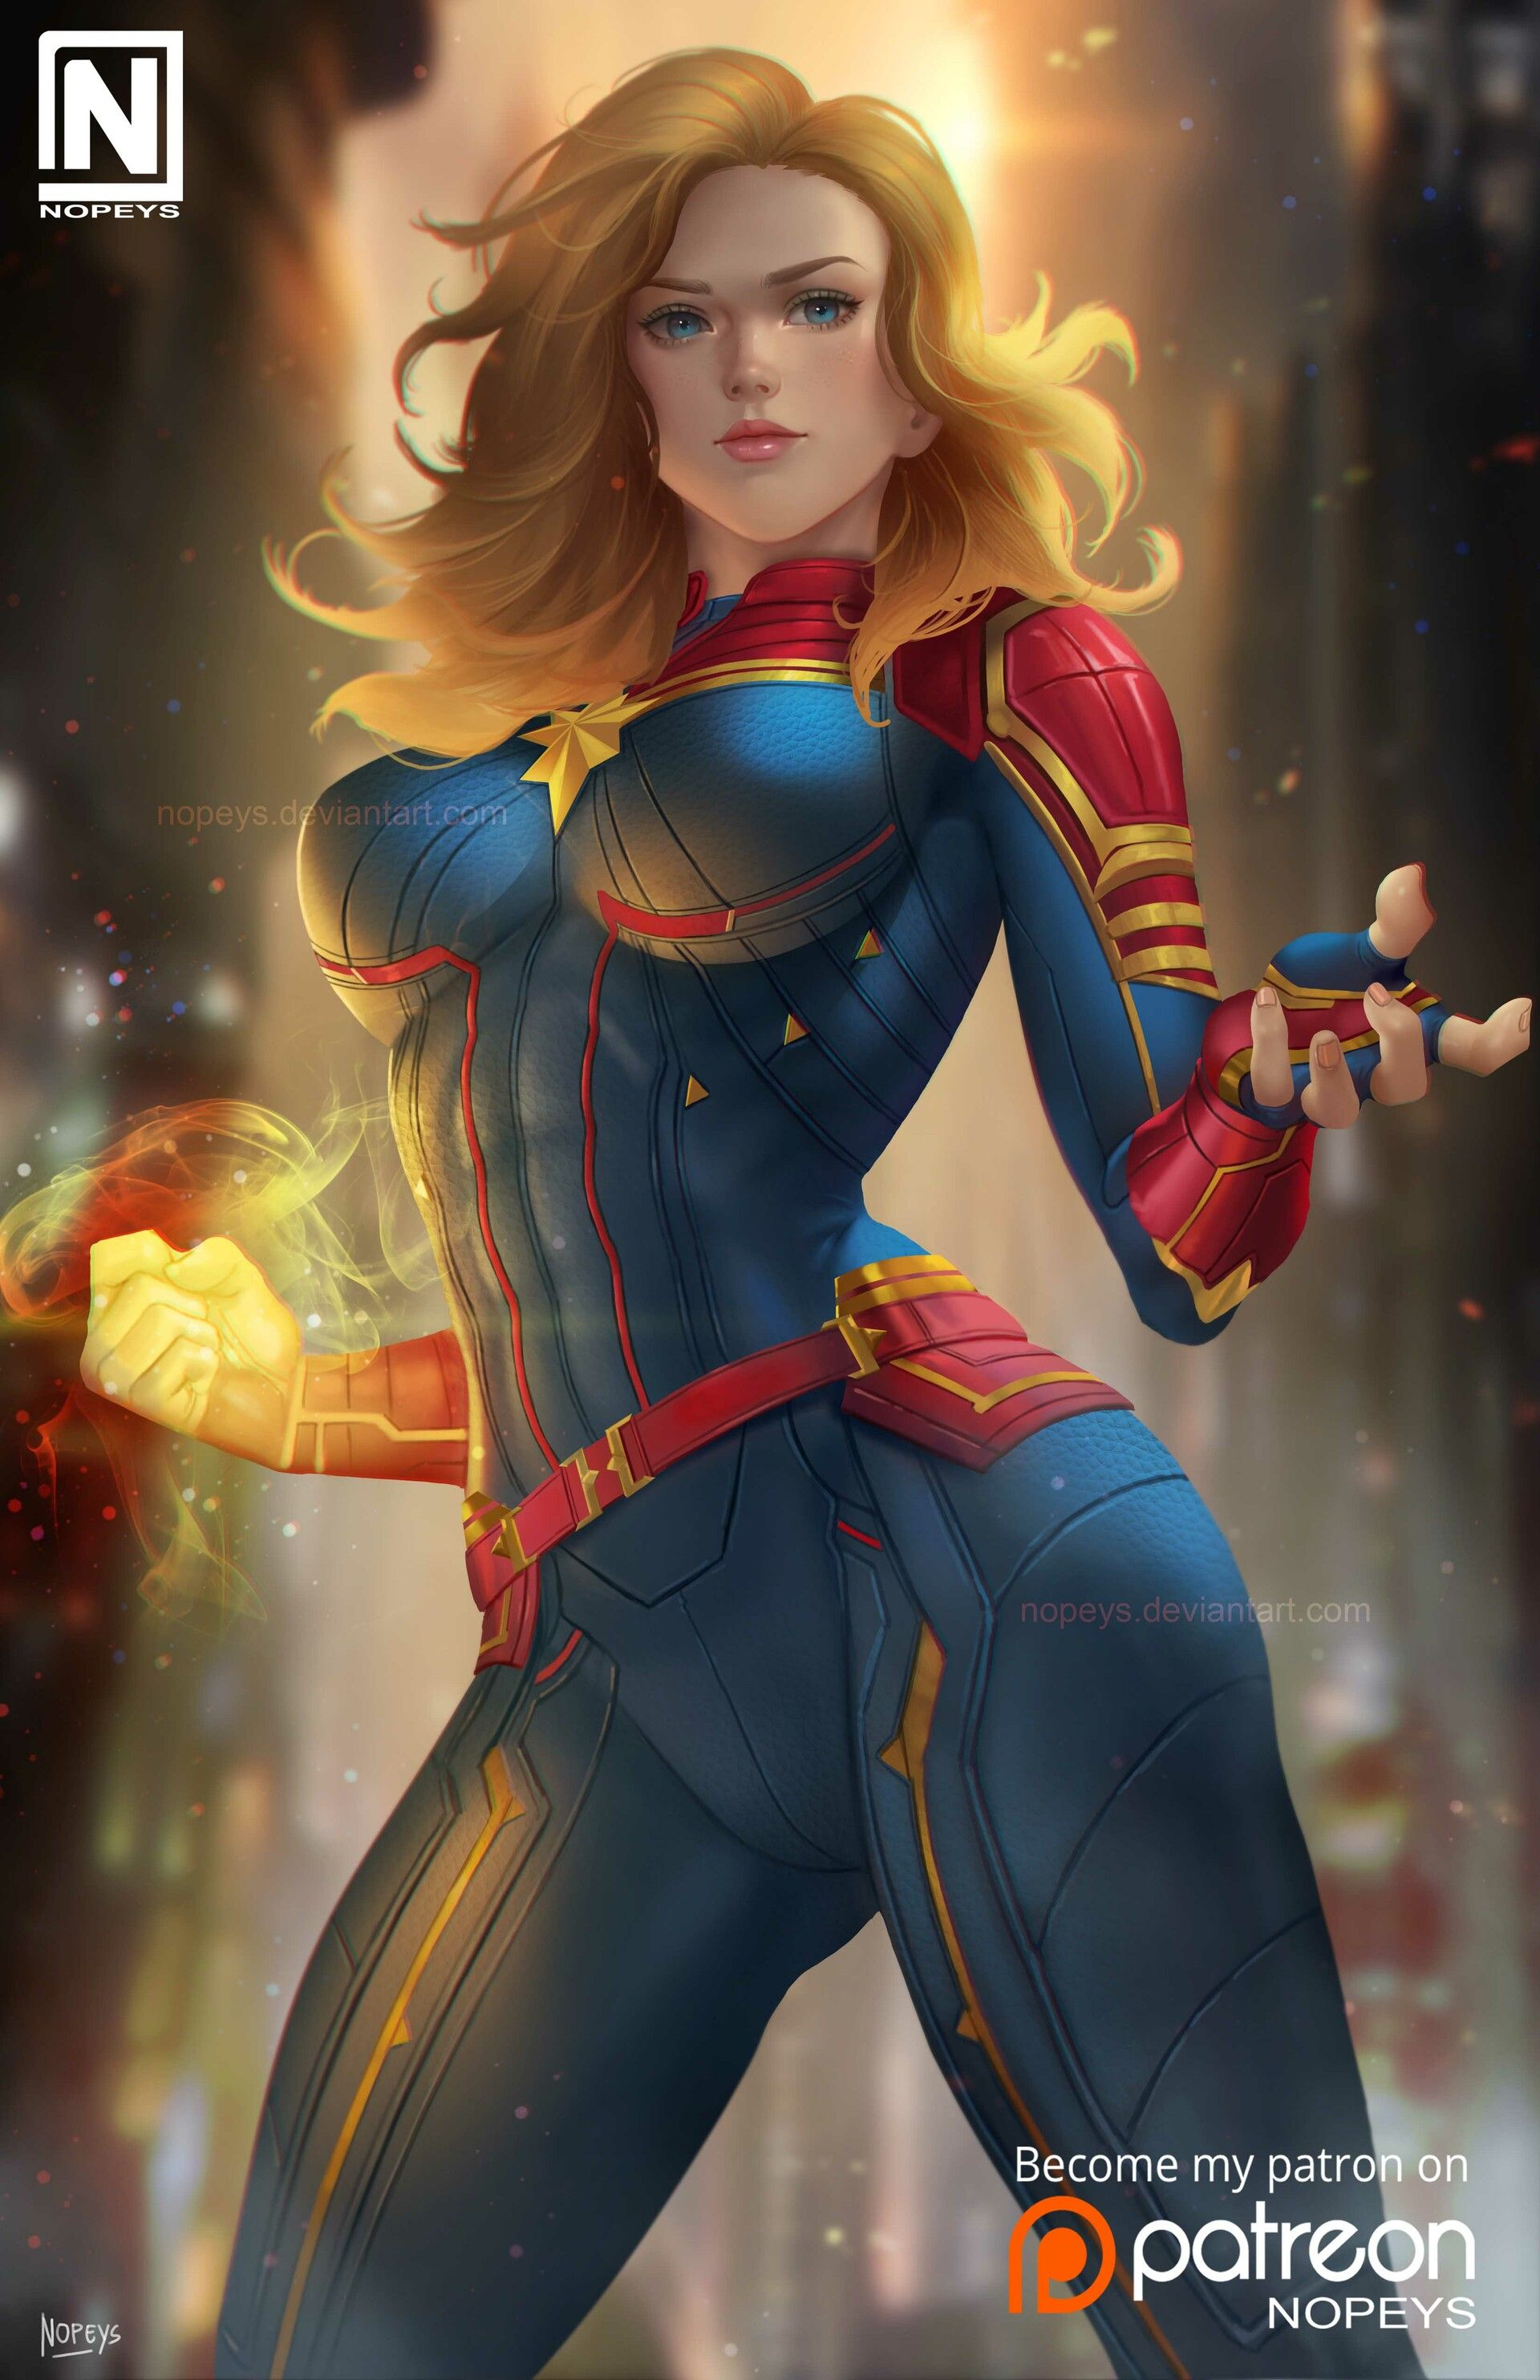 ArtStation - Captain Marvel, NOPEYS : Norman de Mesa